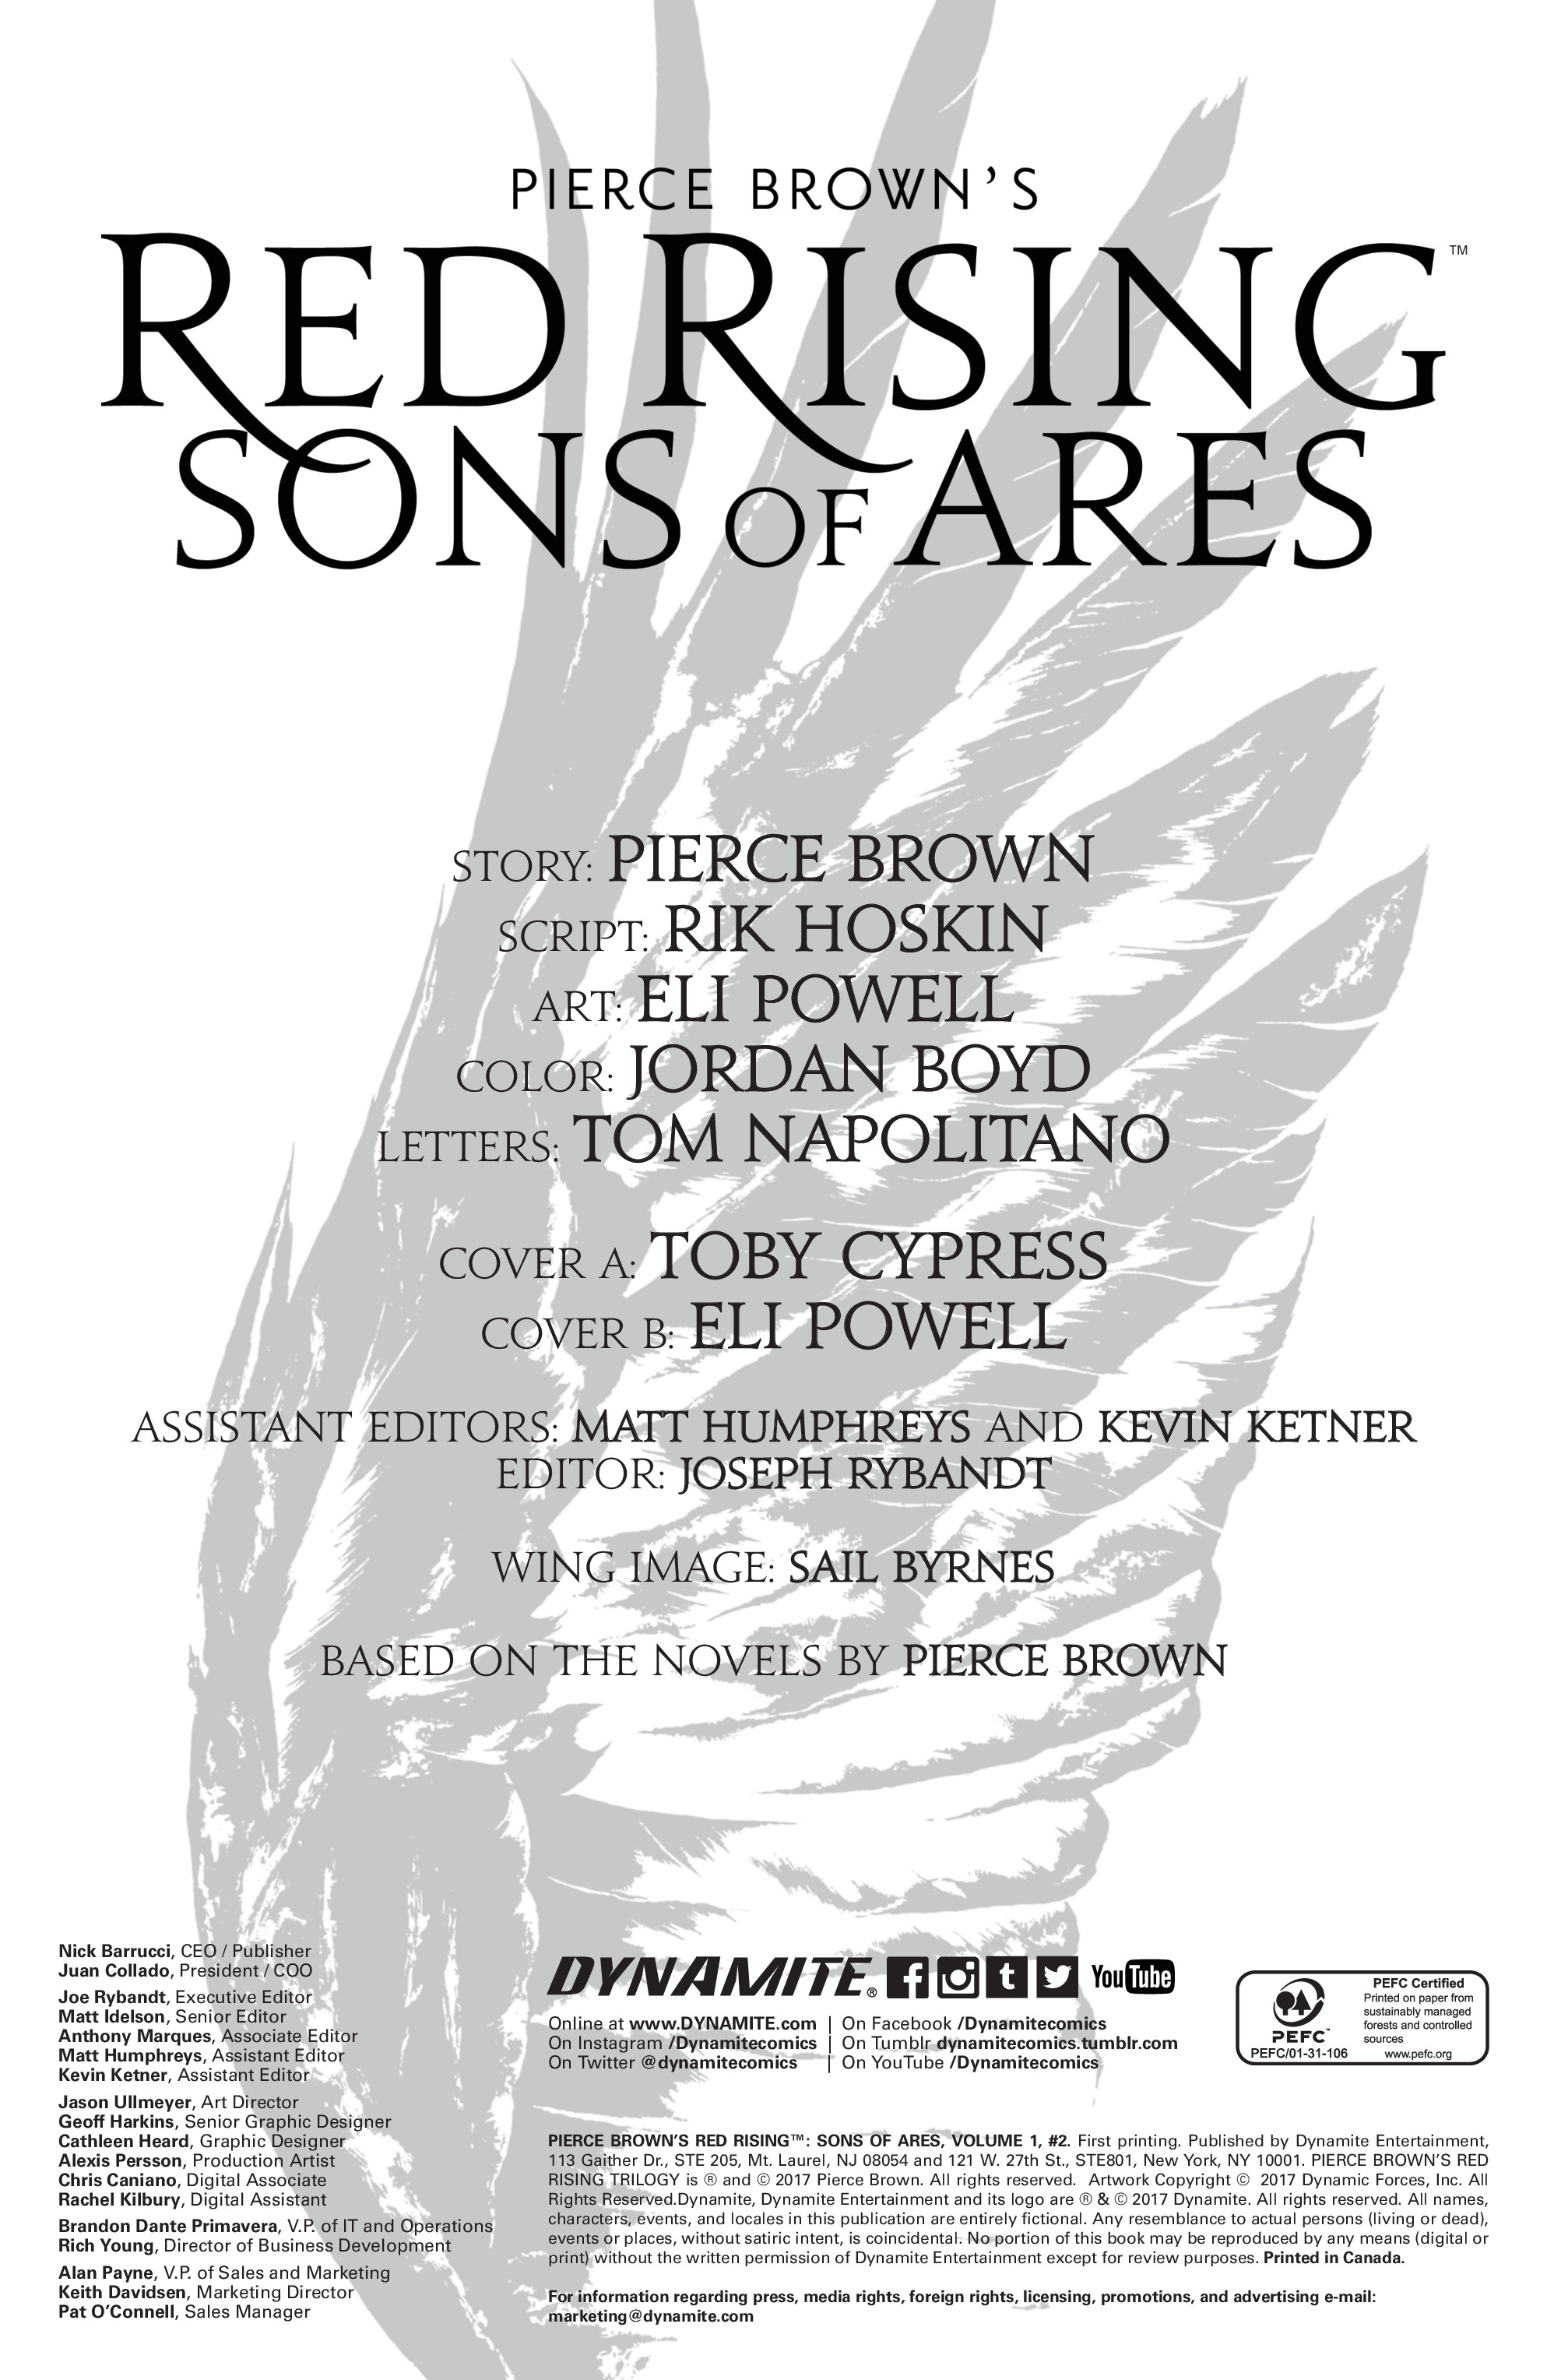 Read online Pierce Brown's Red Rising: Son Of Ares comic -  Issue #2 - 3